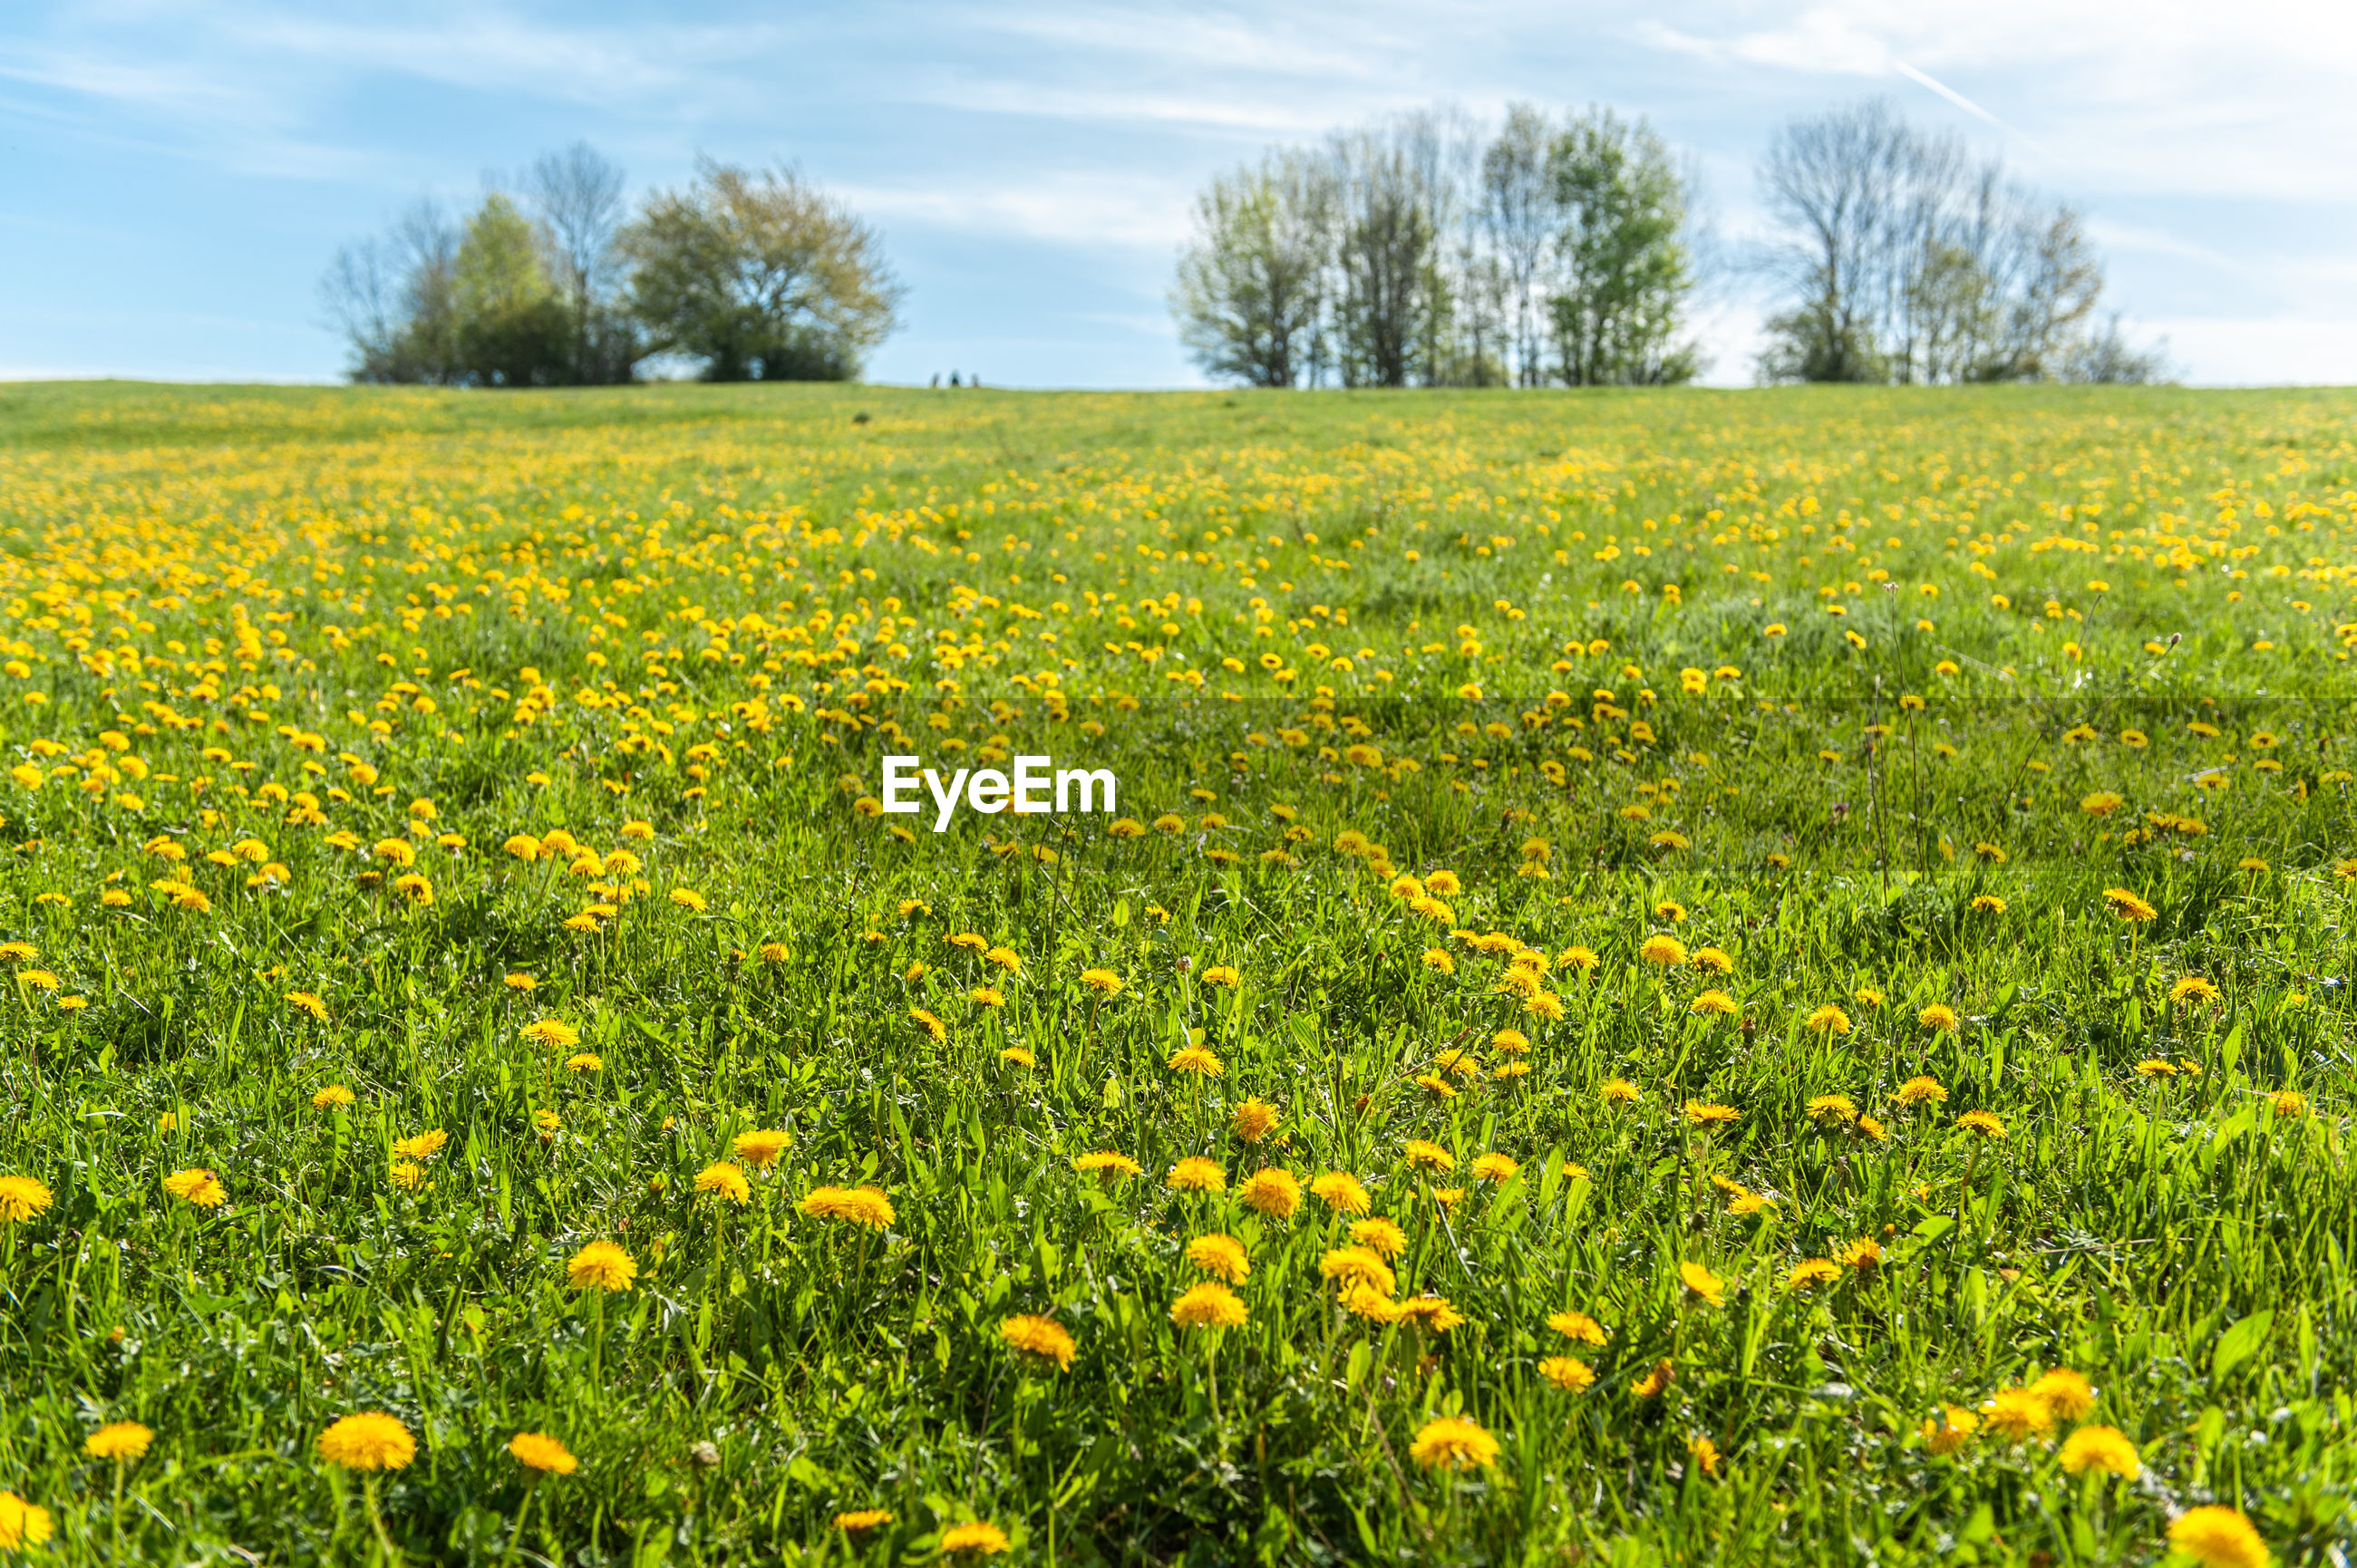 SCENIC VIEW OF YELLOW FLOWERING PLANTS ON FIELD